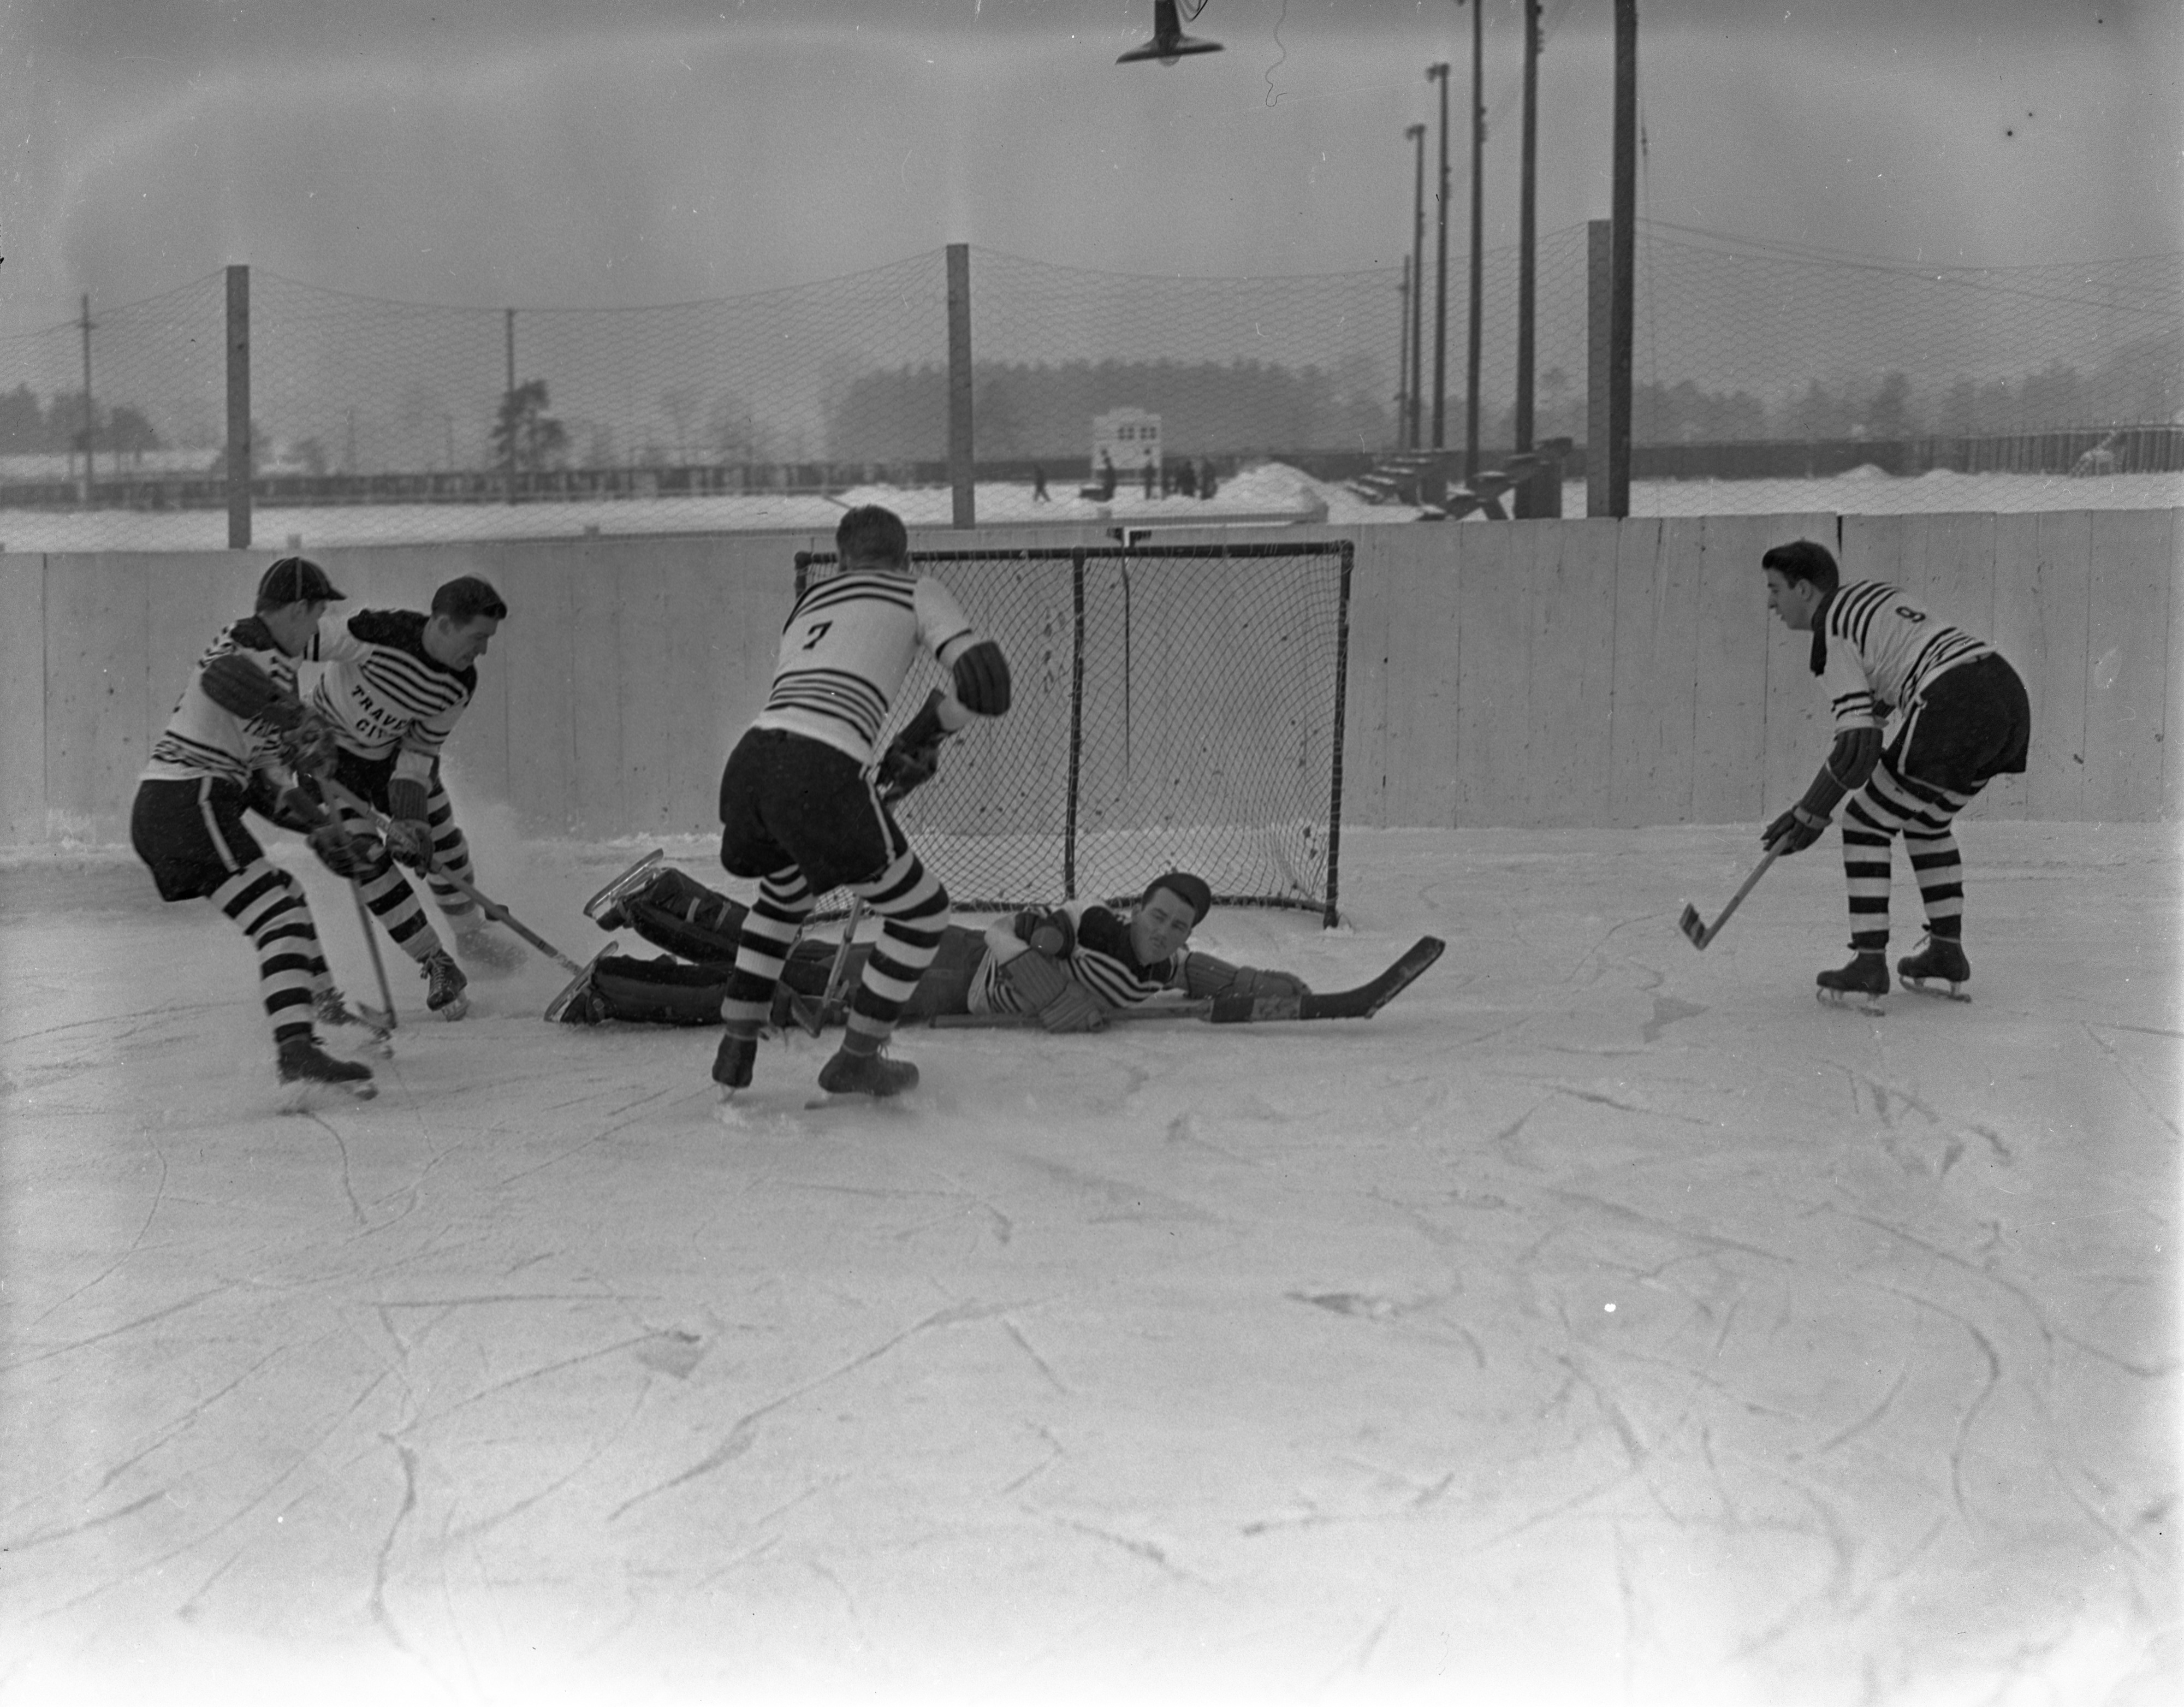 Playing Hockey On Outdoor Ice Rink In Traverse City, January 1940 image